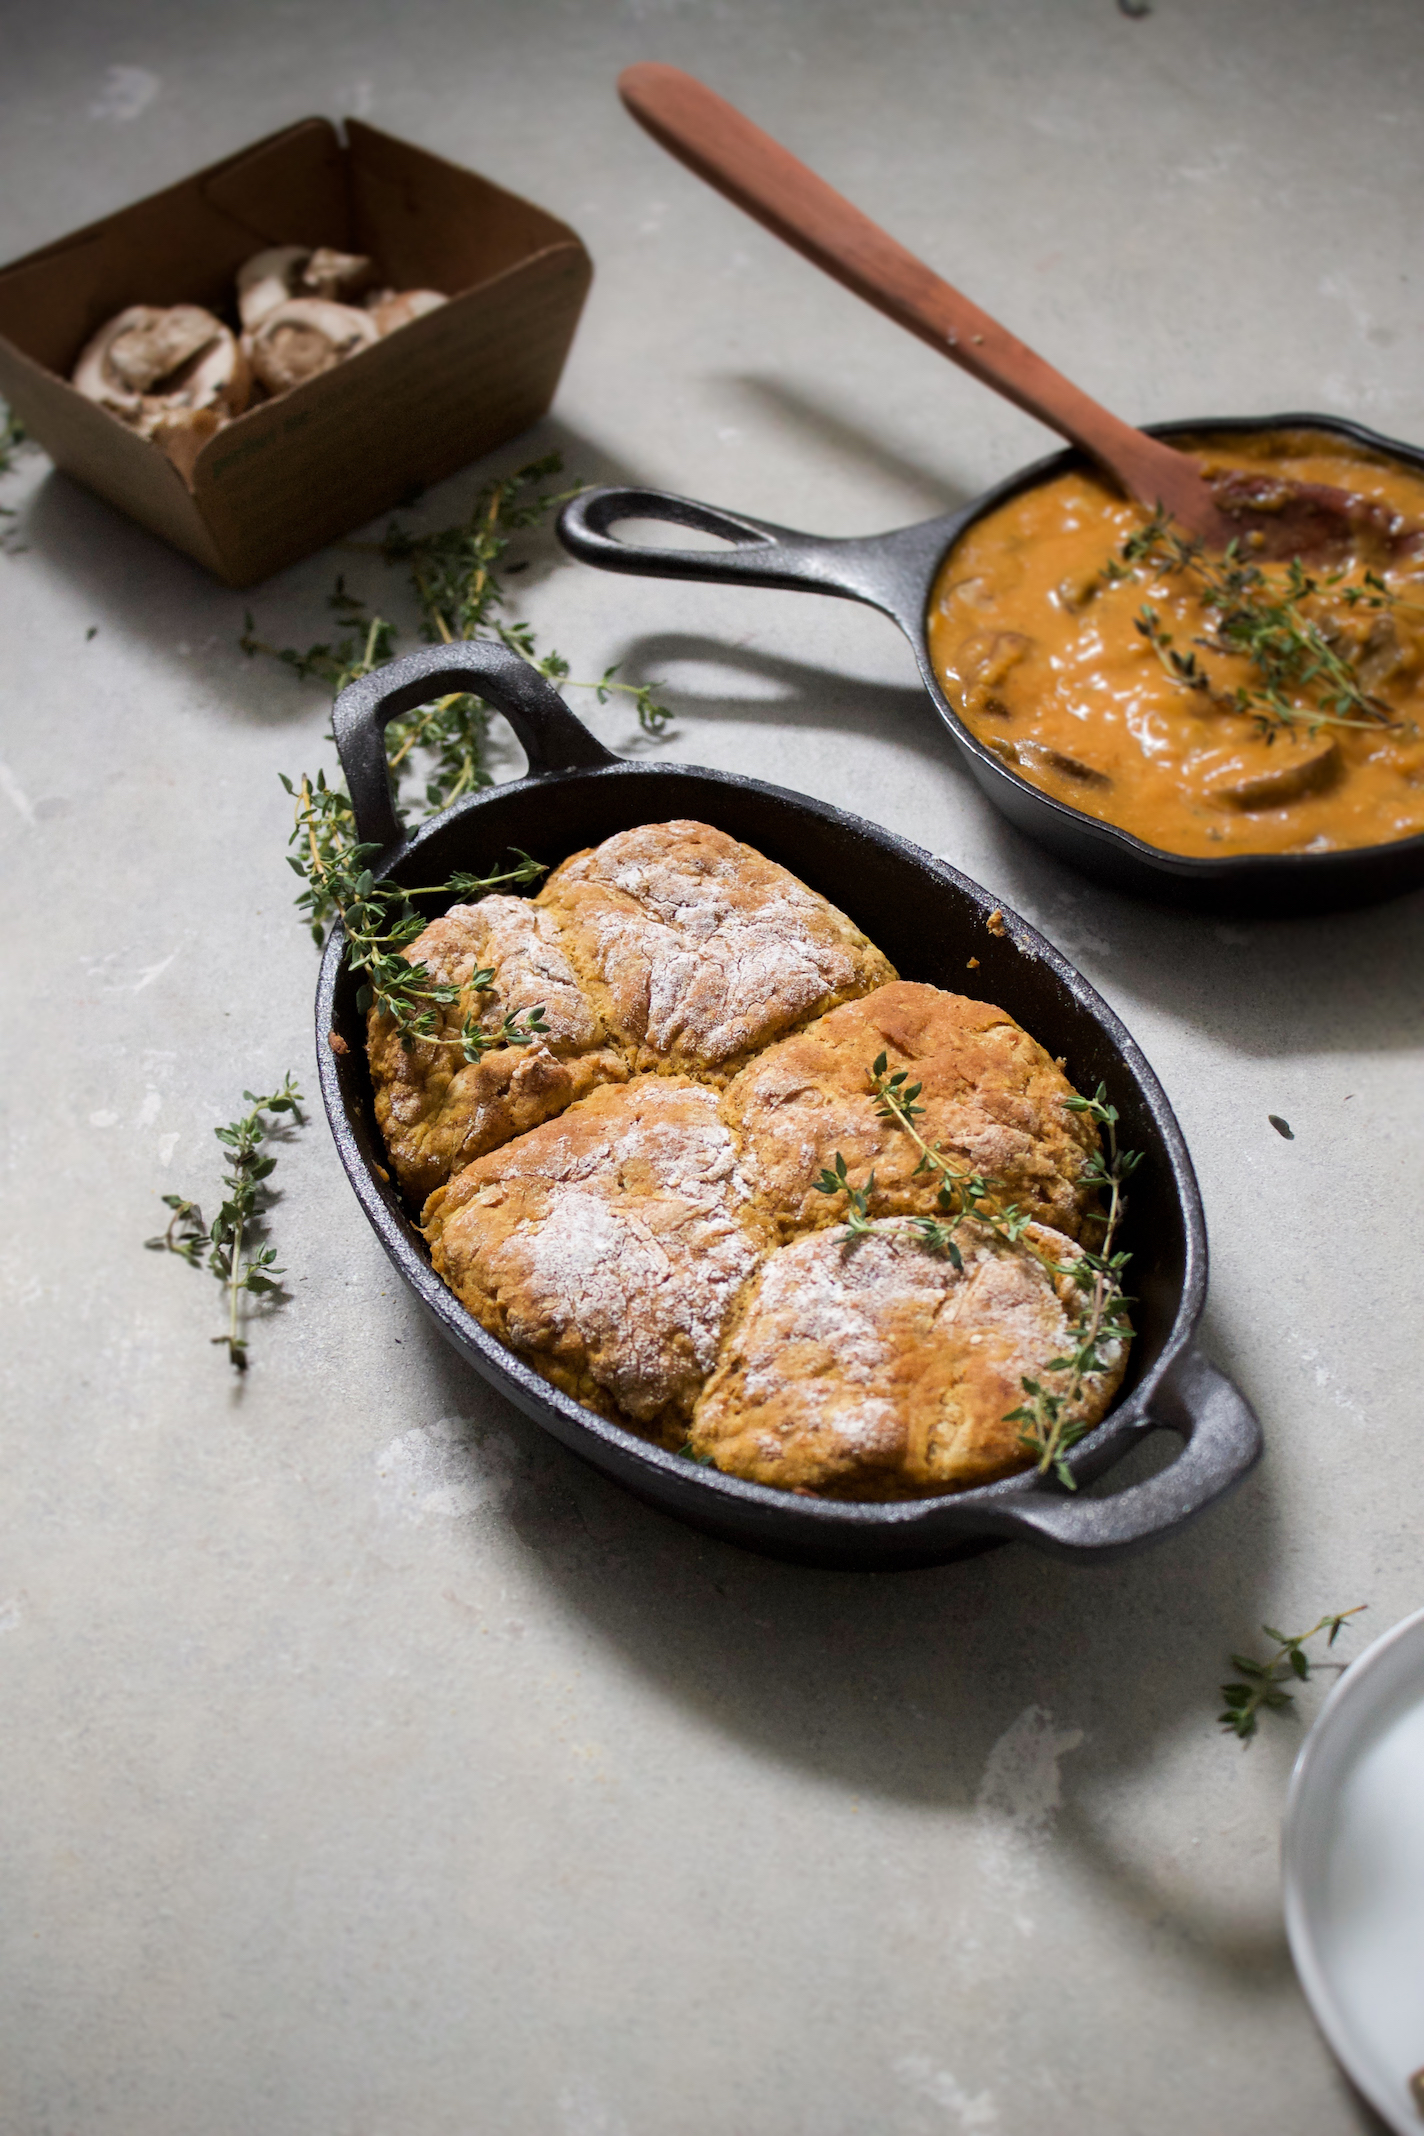 Pumpkin biscuits and gravy 2.jpg